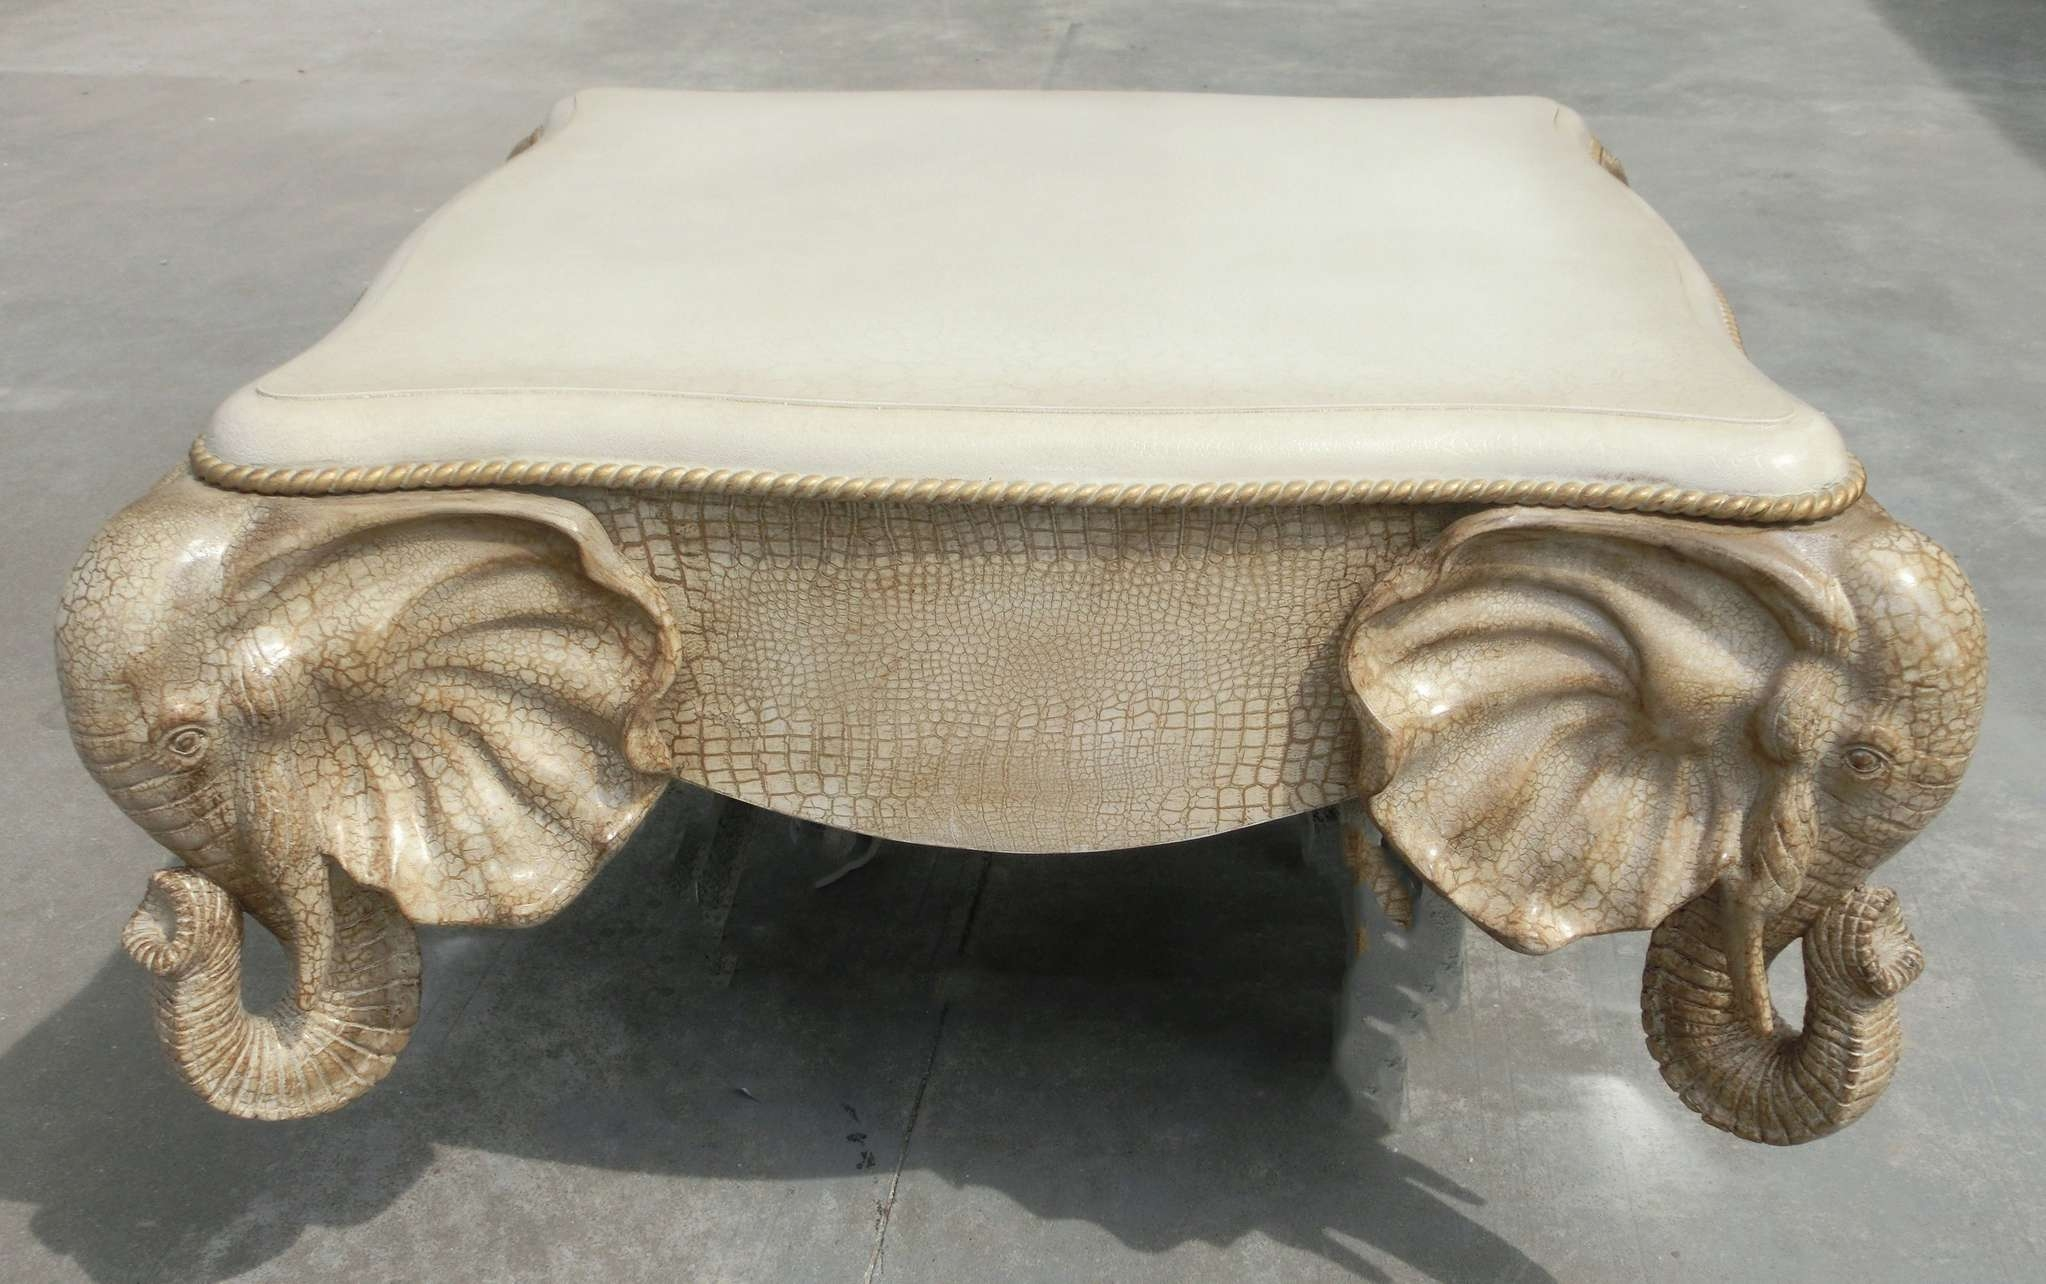 Widely Used Elephant Coffee Tables With Glass Top For Glass : Elephant Coffee Table Winston Sahd Elephant Table Elephant (View 20 of 20)